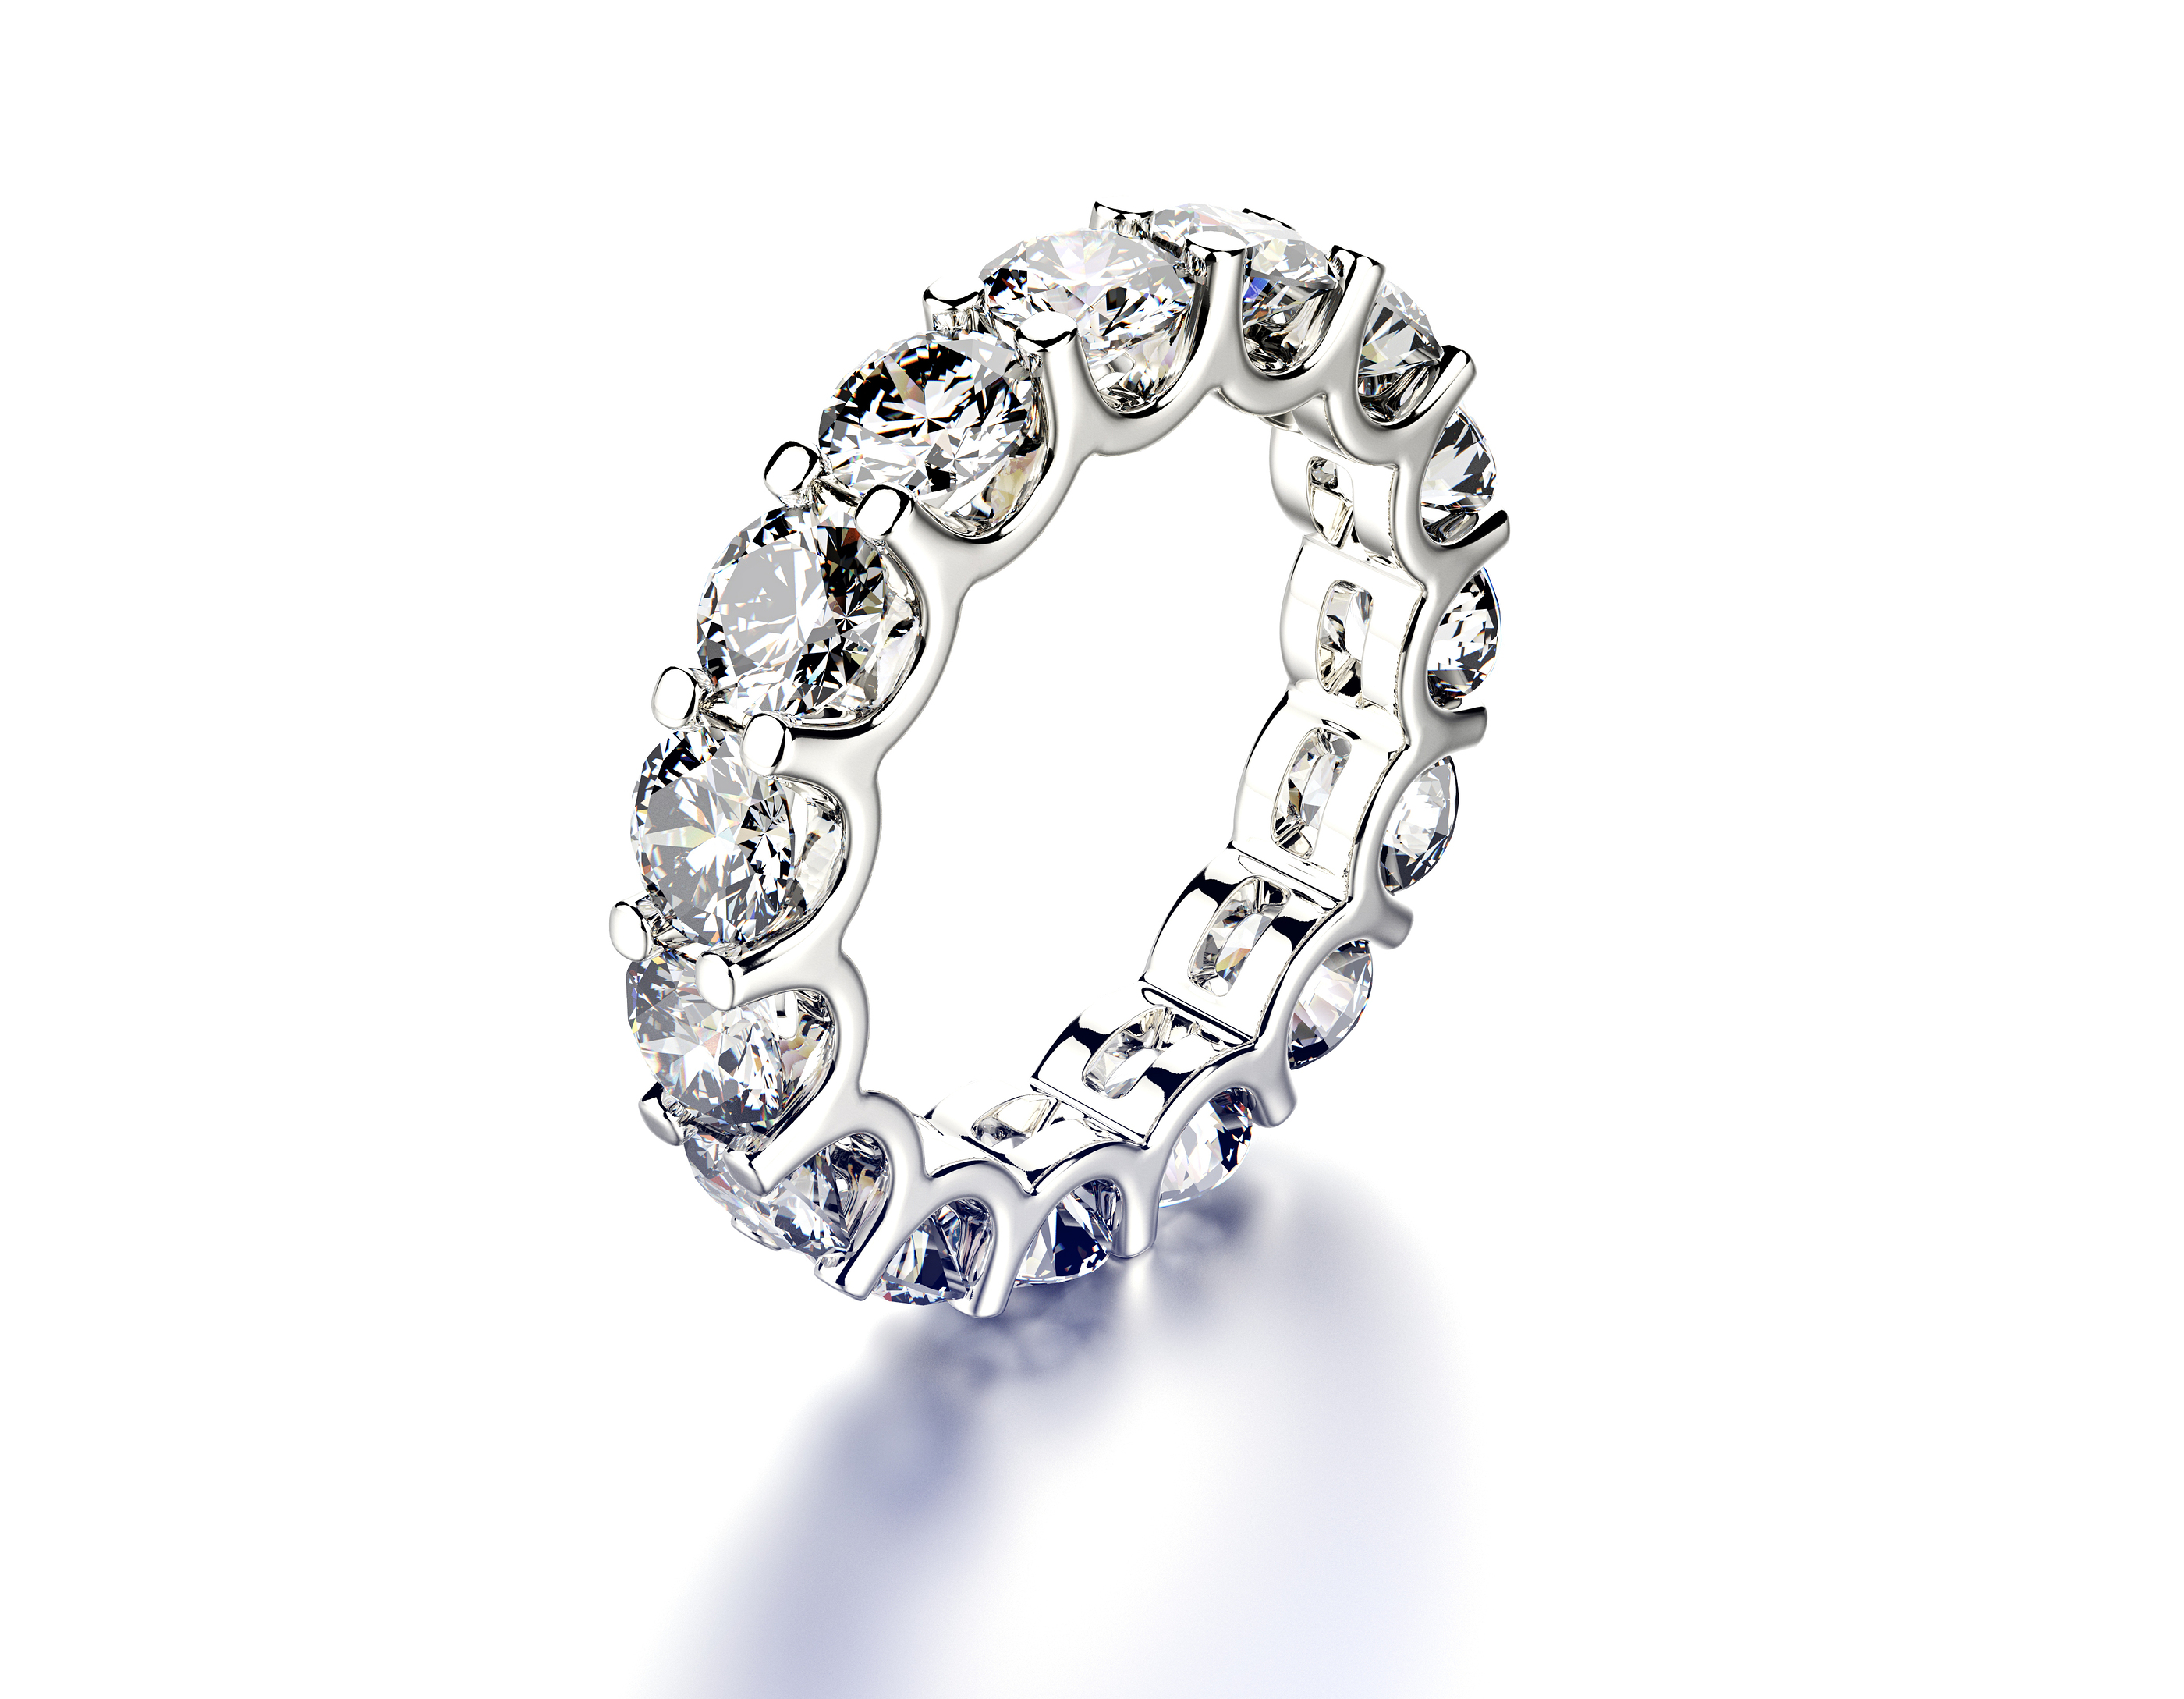 large that halo this diamond ring of engagement in one surrounding stunning aspire has centre the heart rings consists diamonds view shoulders and smaller products placed